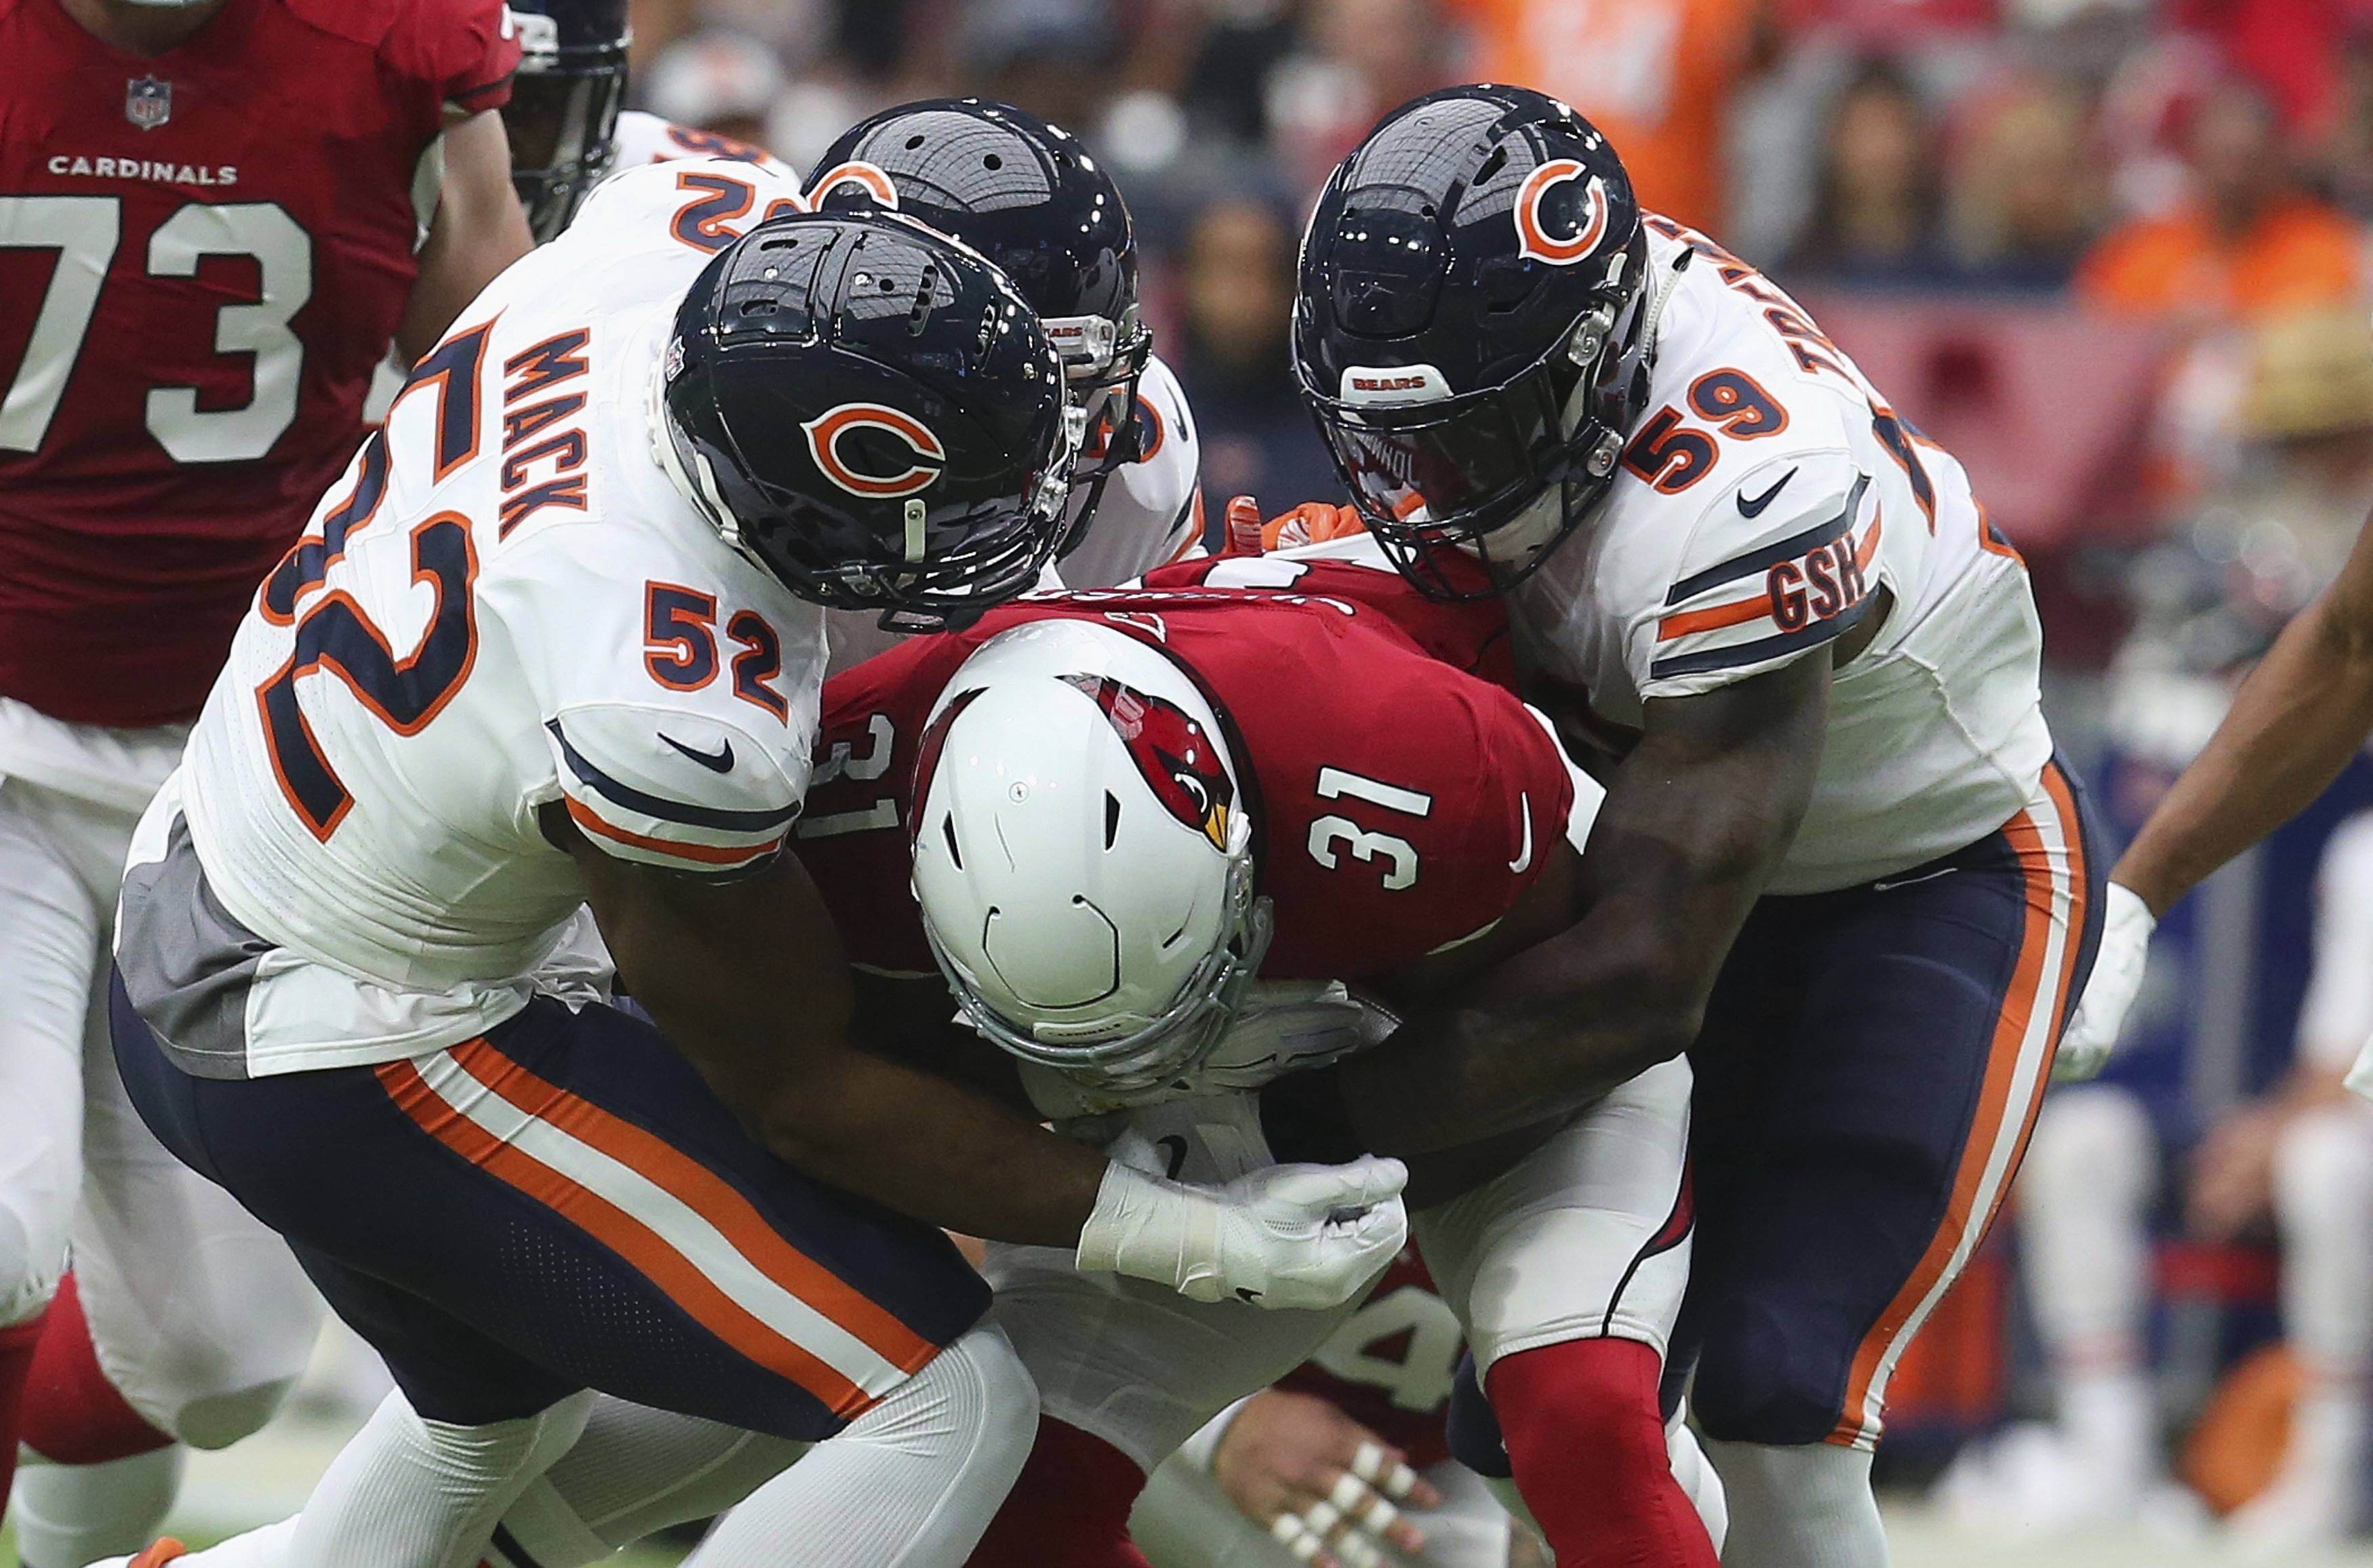 Chicago Bears linebacker Khalil Mack (52) makes a tackle on Arizona Cardinals running back David Johnson (31) with help from Danny Trevathan (59) during the first half of an NFL football game, Sunday, Sept. 23, 2018, in Glendale, Ariz.